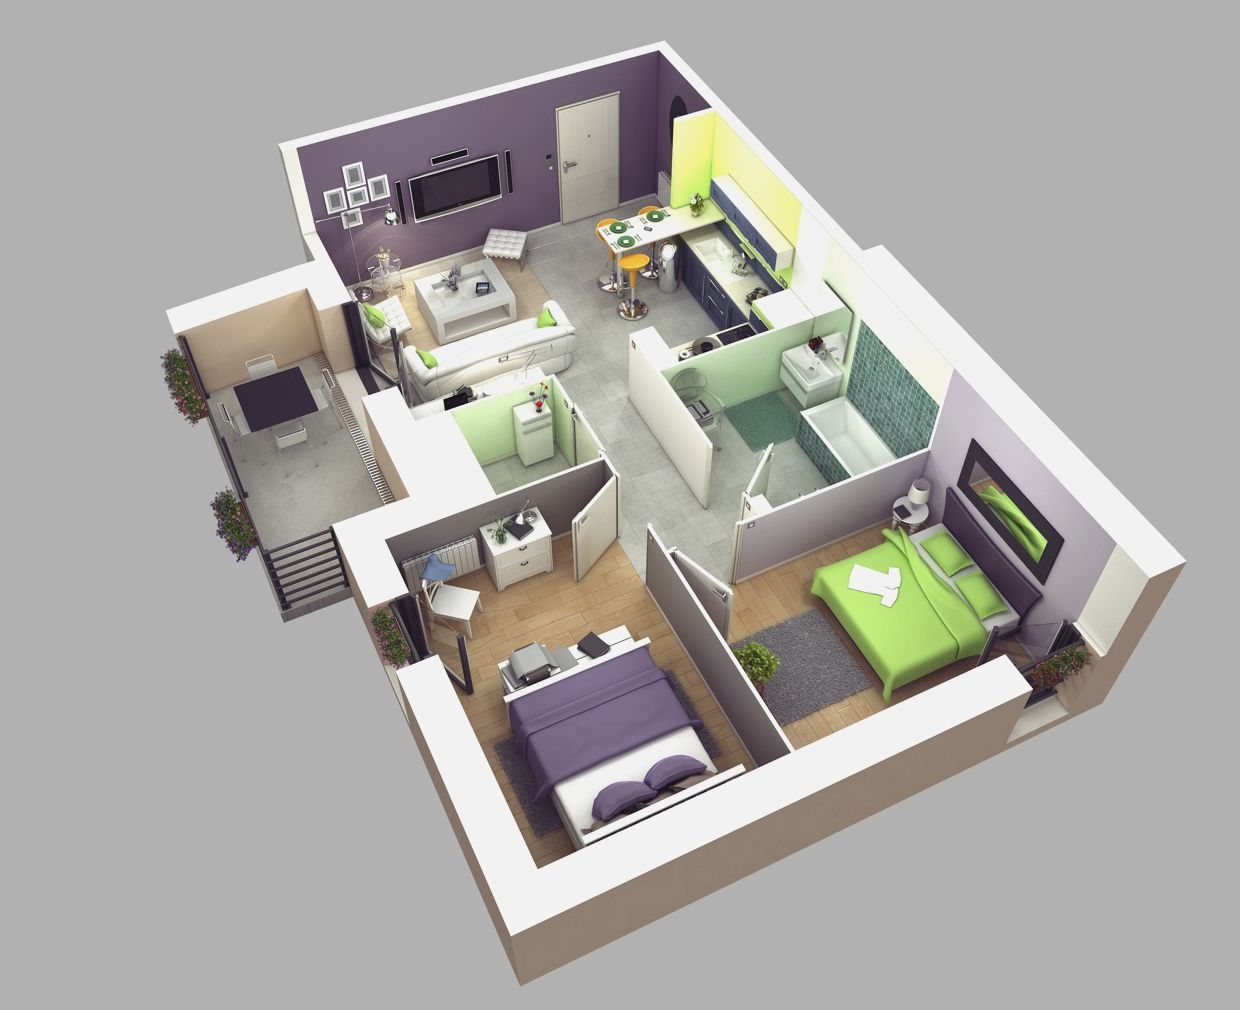 1 bedroom house plans 3d just the two of us apartment for 3 bedroom house plan design 3d